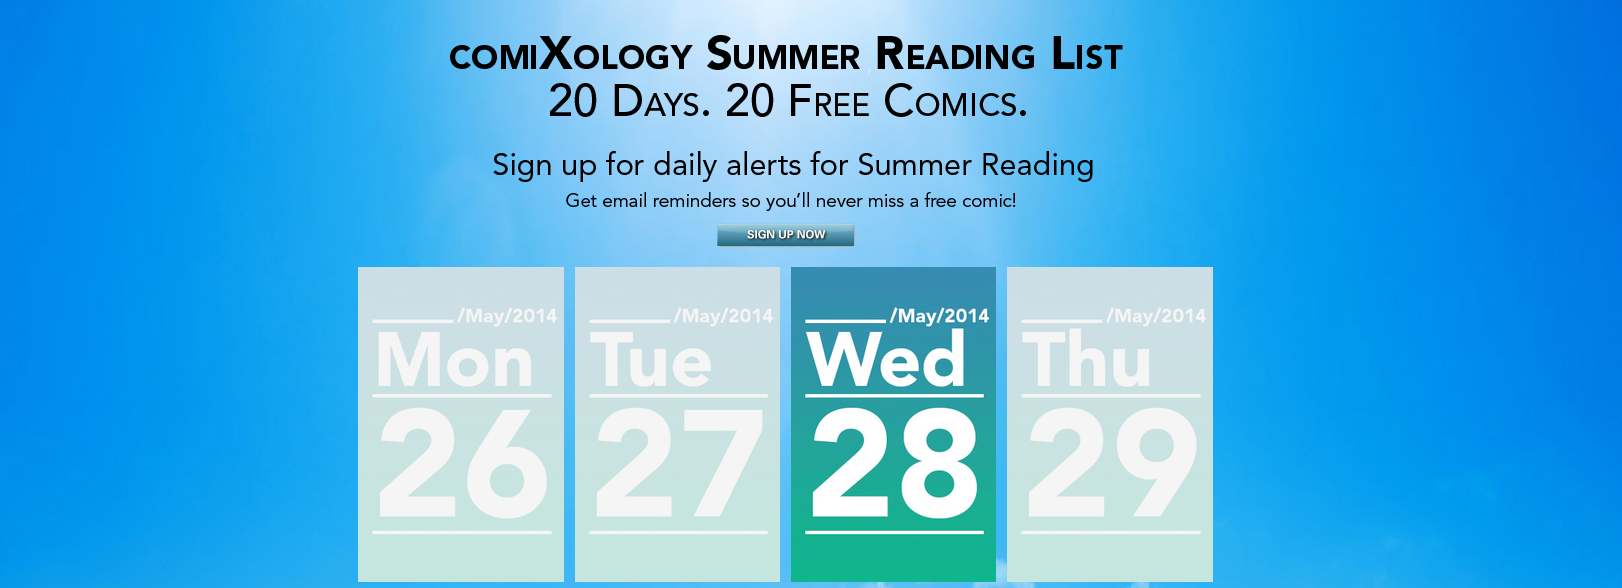 comixology_summer_reading_list_promo